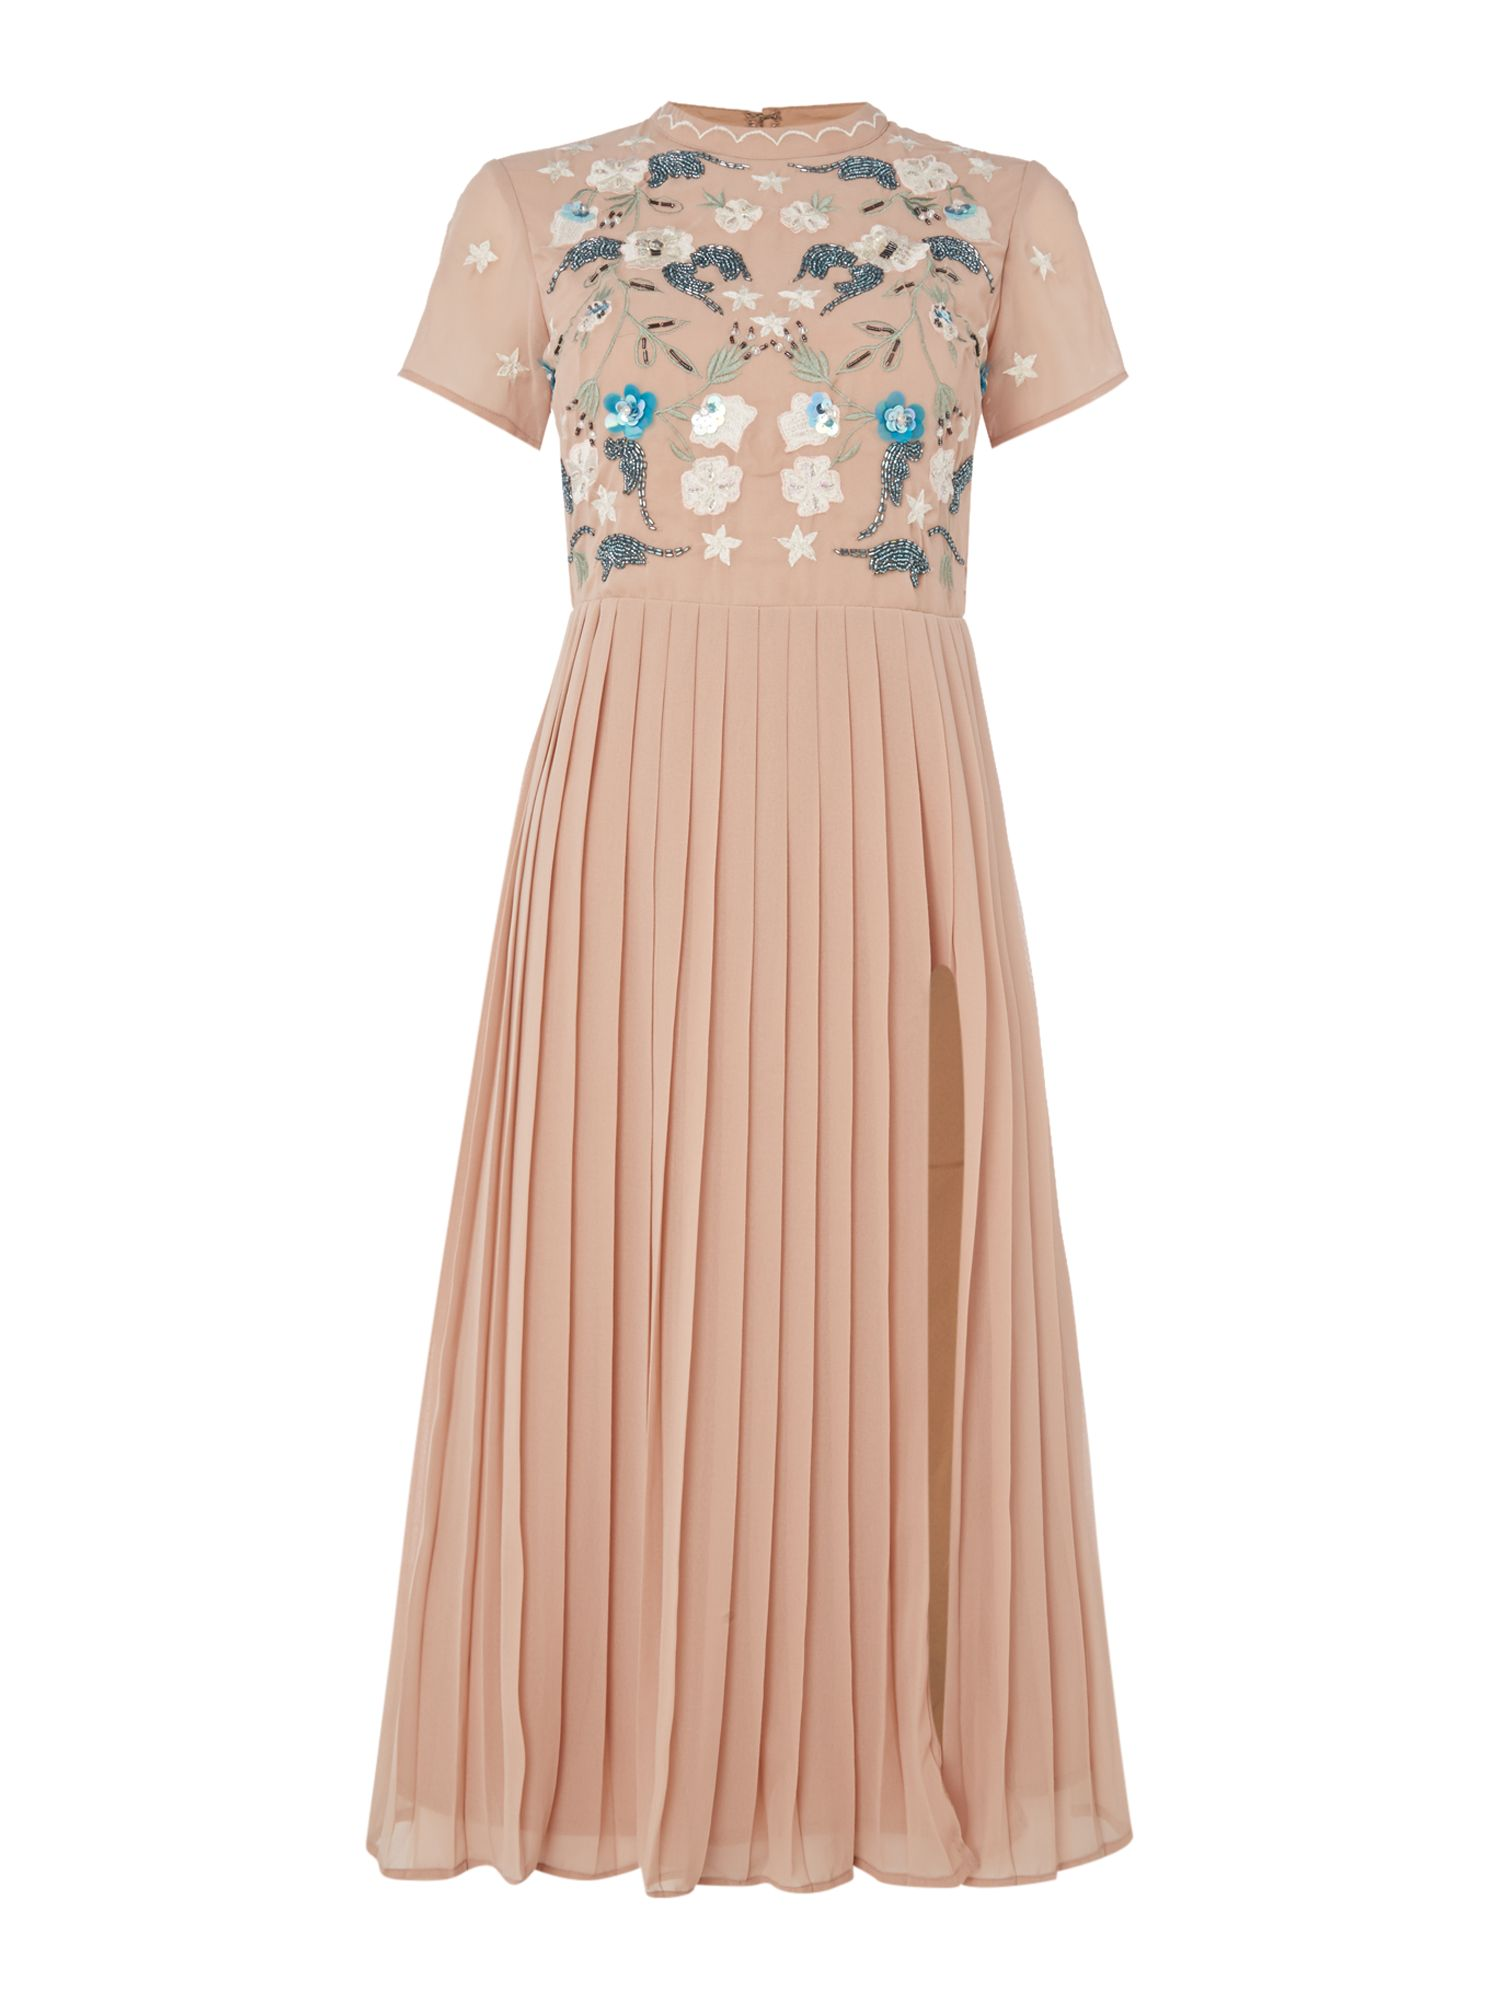 Fun 1920s Flapper Dresses & Quality Flapper Costumes Frock and Frill Short sleeved high neck midi dress Blush £80.50 AT vintagedancer.com